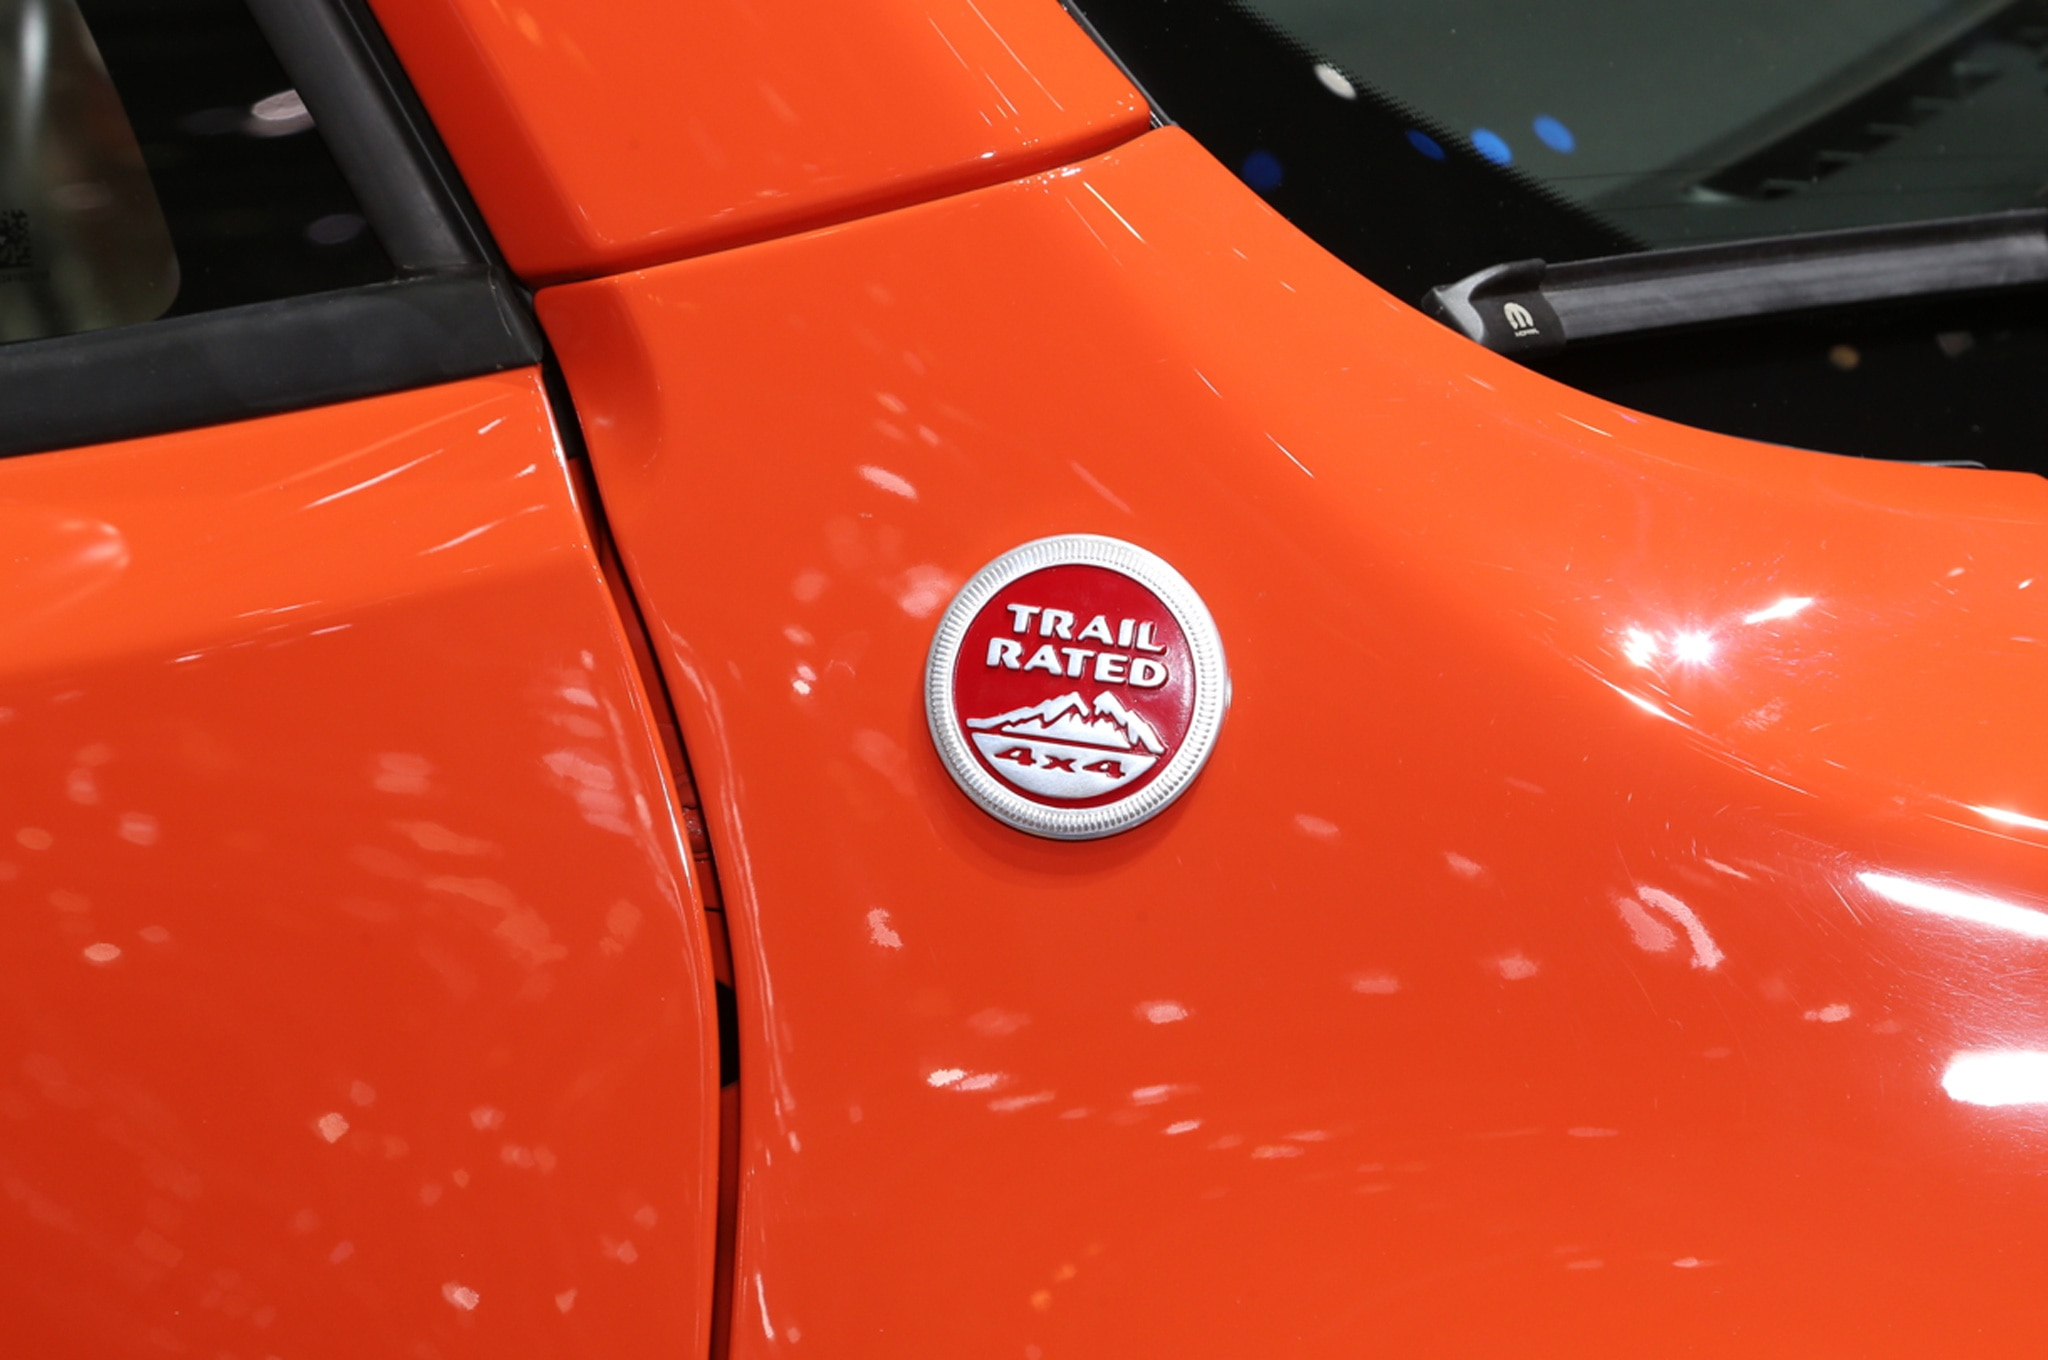 2015 Jeep Renegade Trailhawk show floor trail rated badge